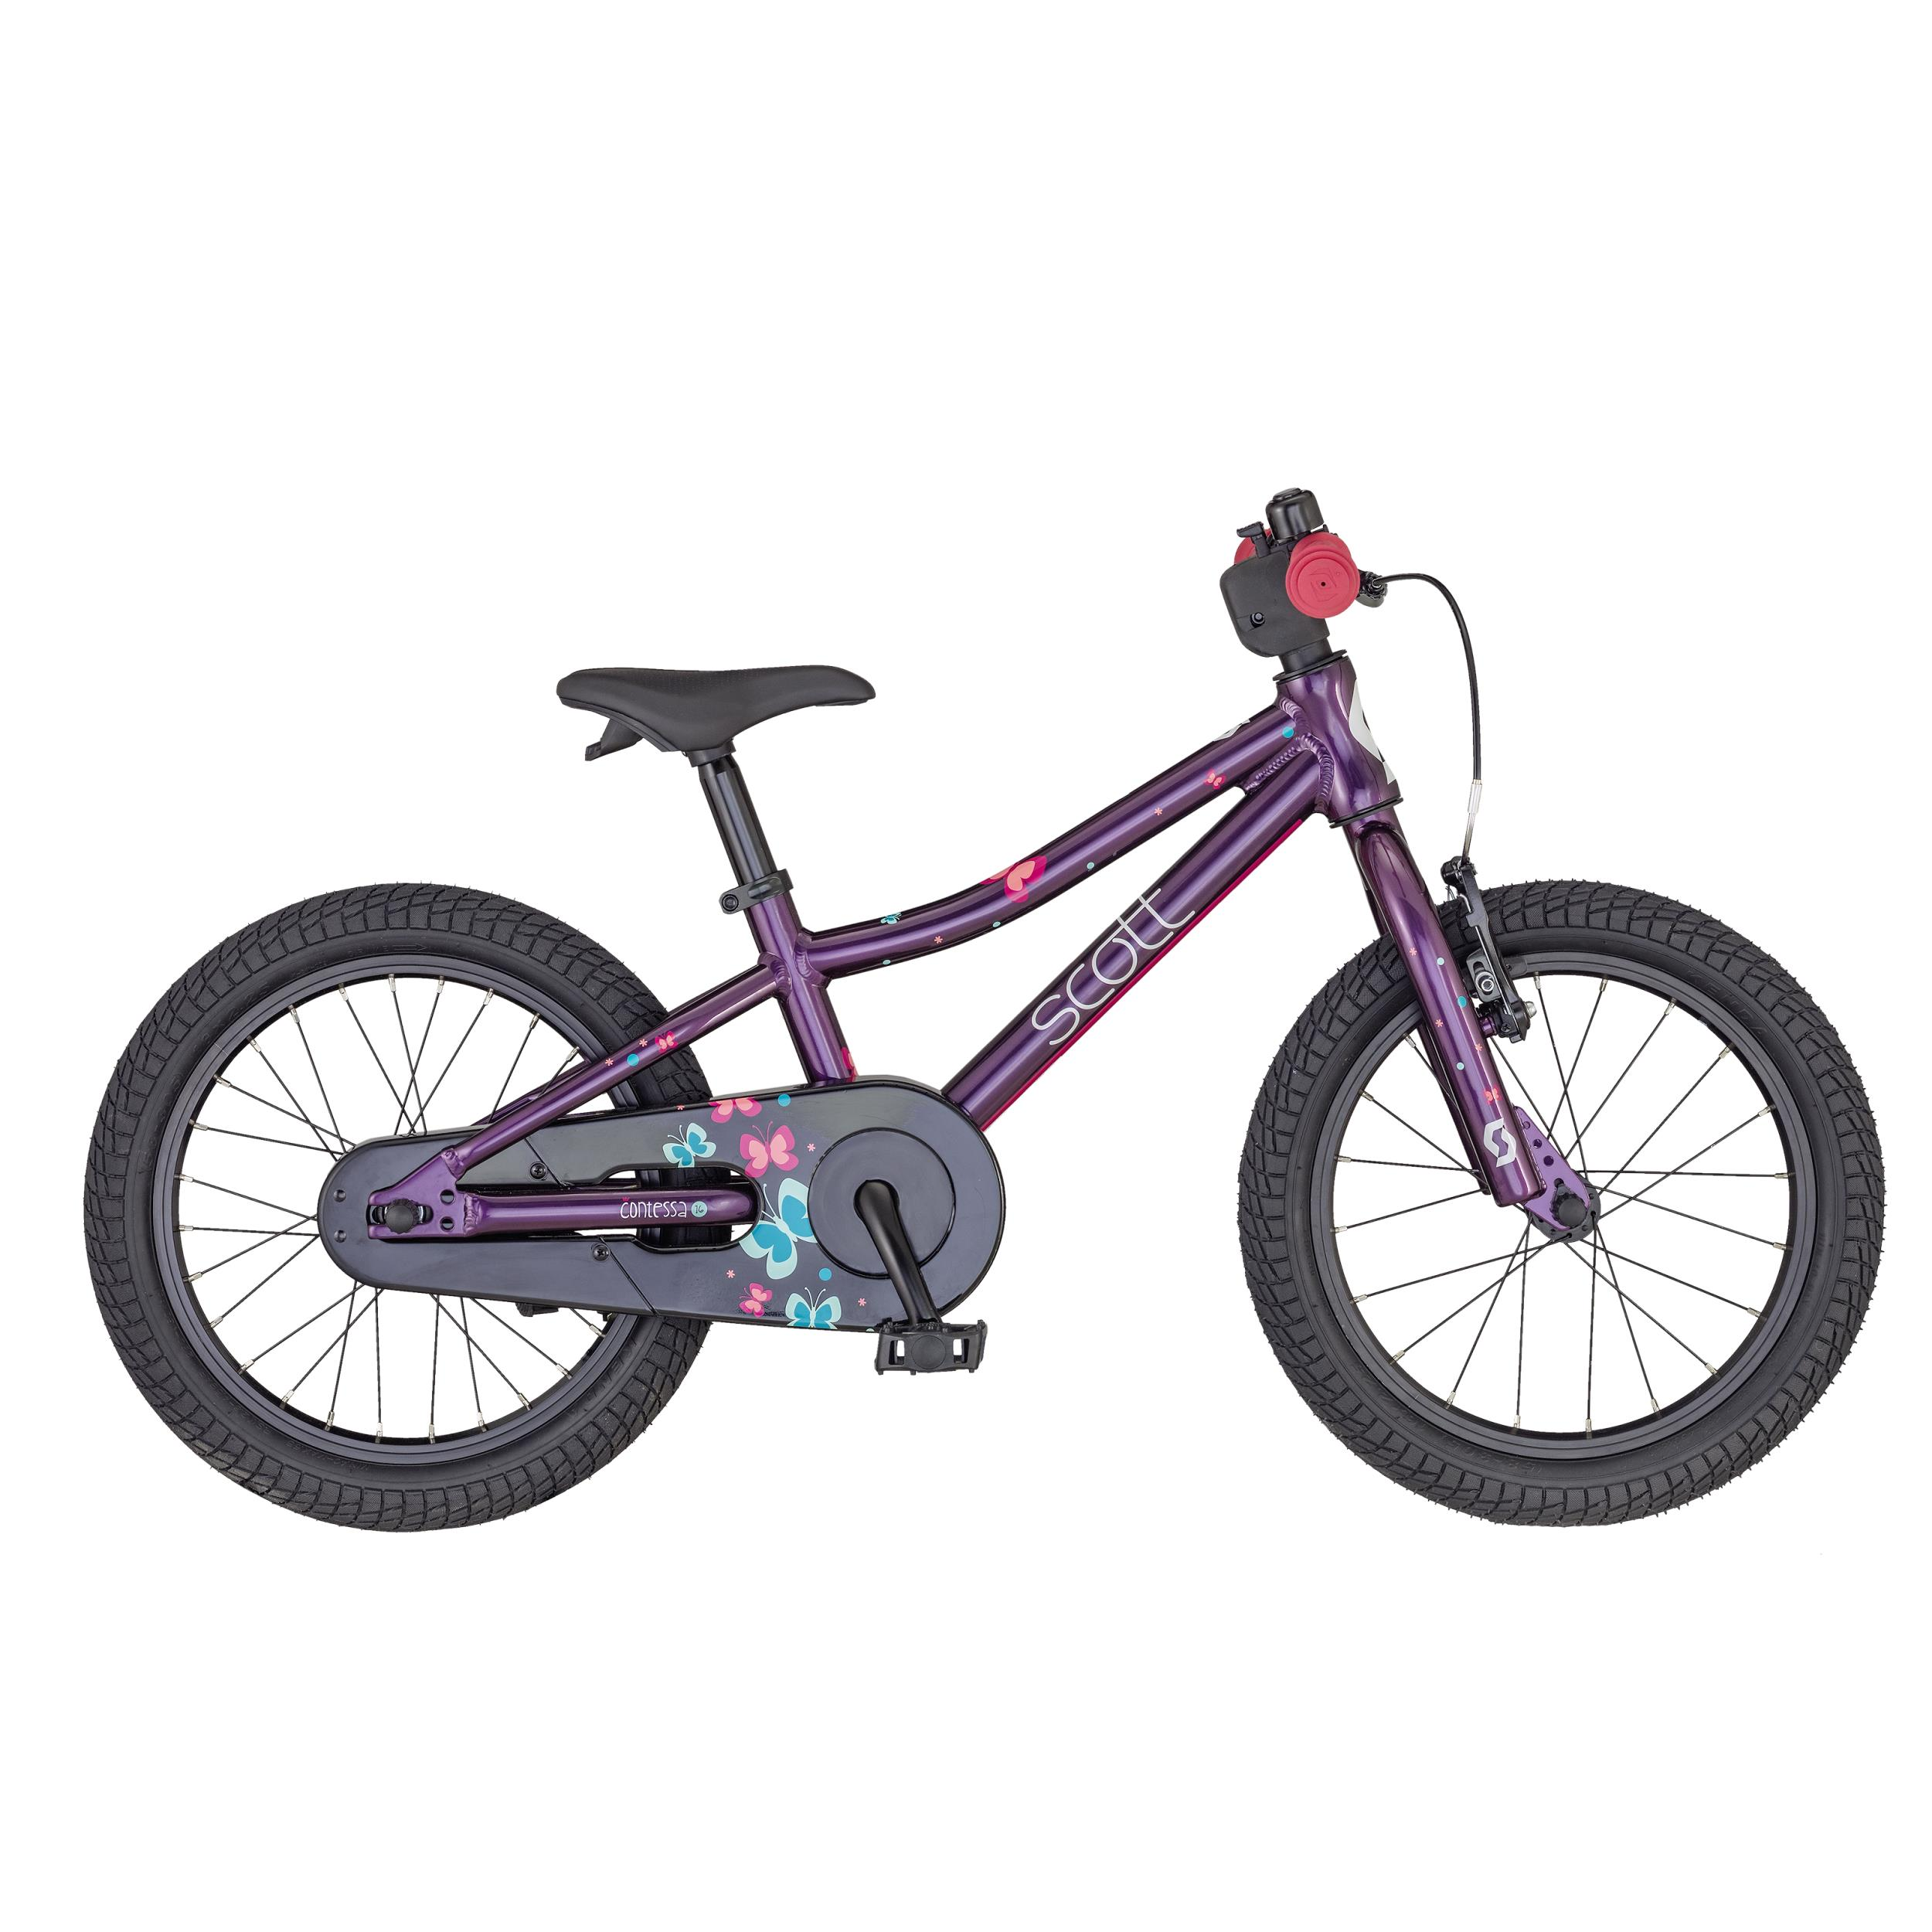 Scott Contessa 16 deep purple 2020 - 16 -